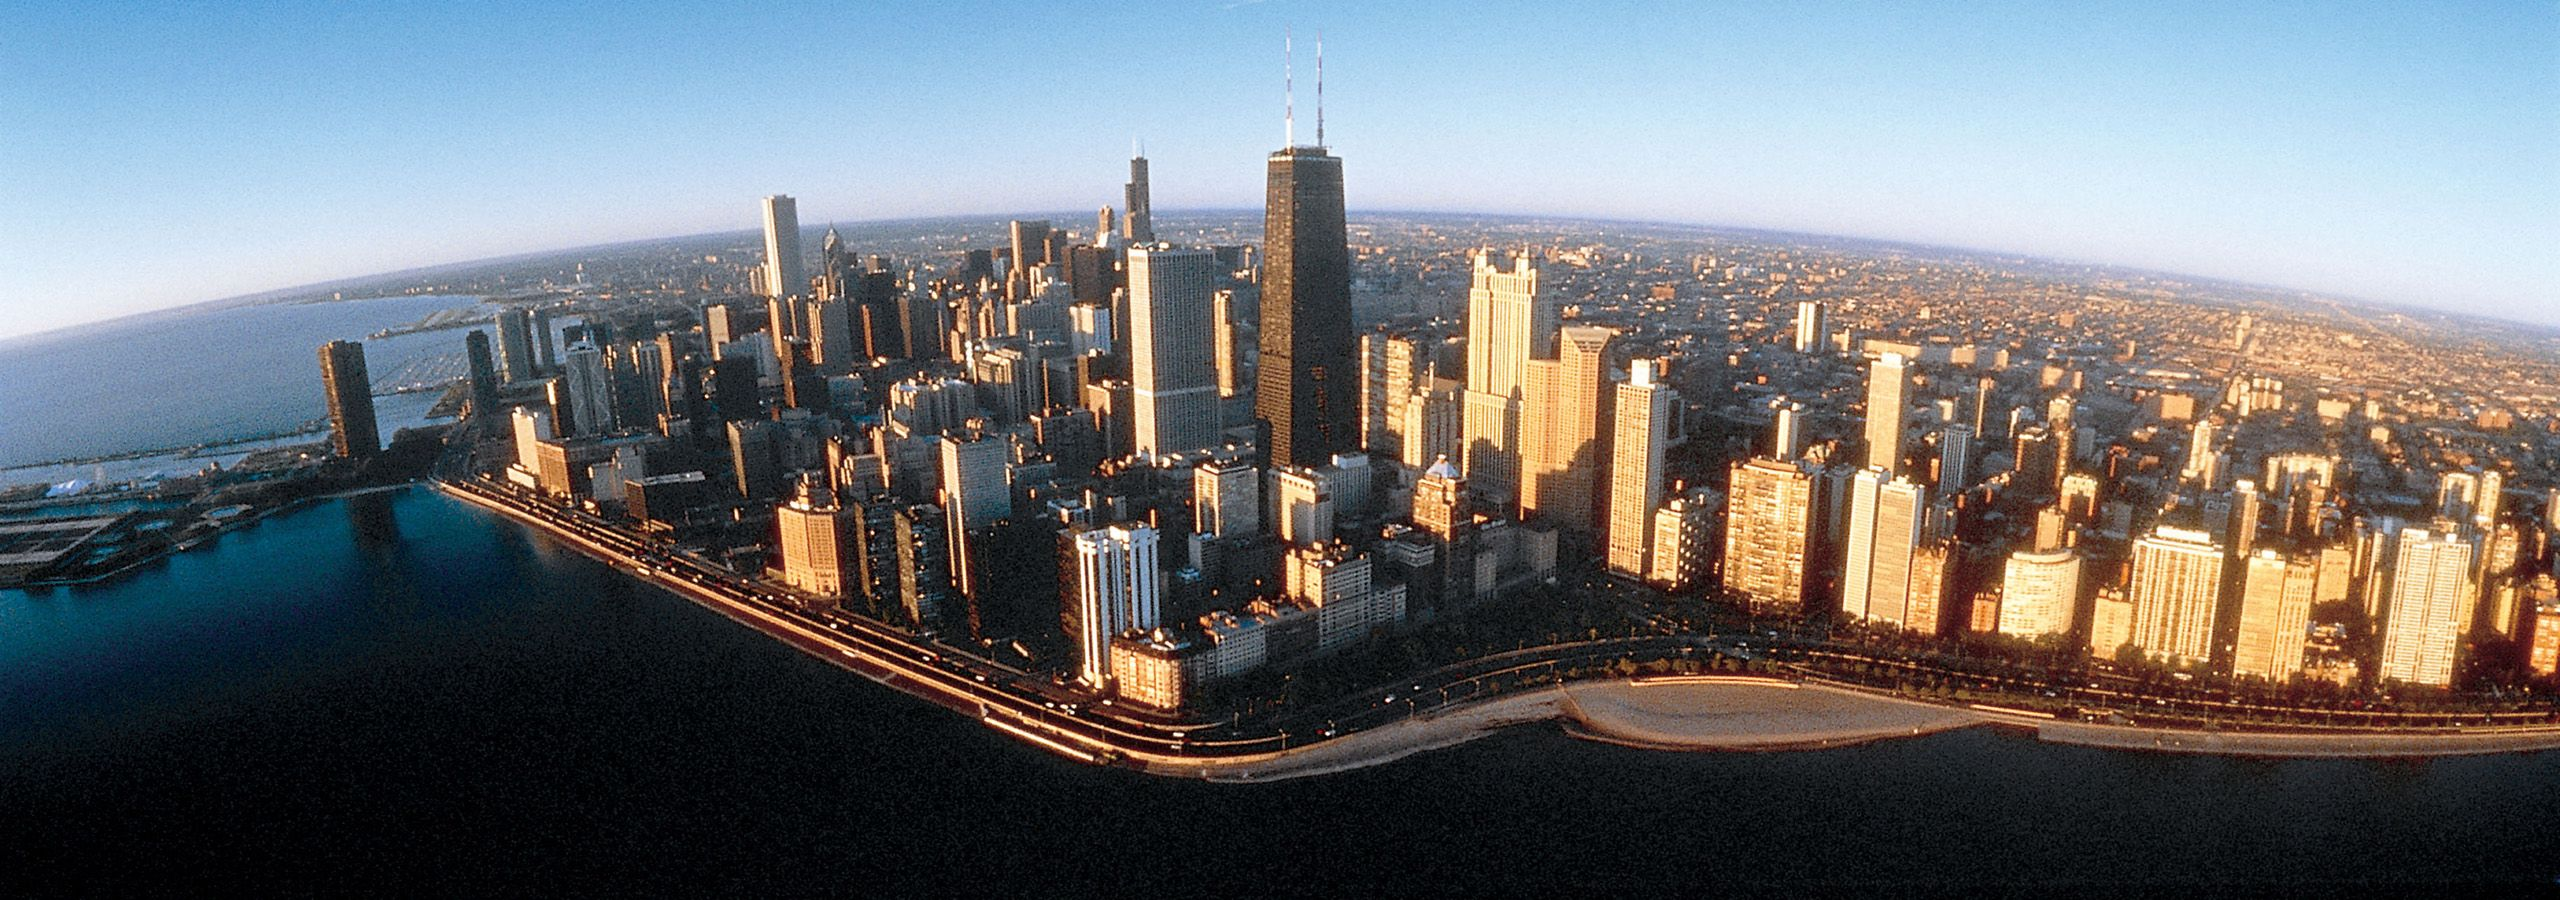 Chicago skyline wallpapers 72 wallpapers hd wallpapers for Chicago skyline mural wallpaper